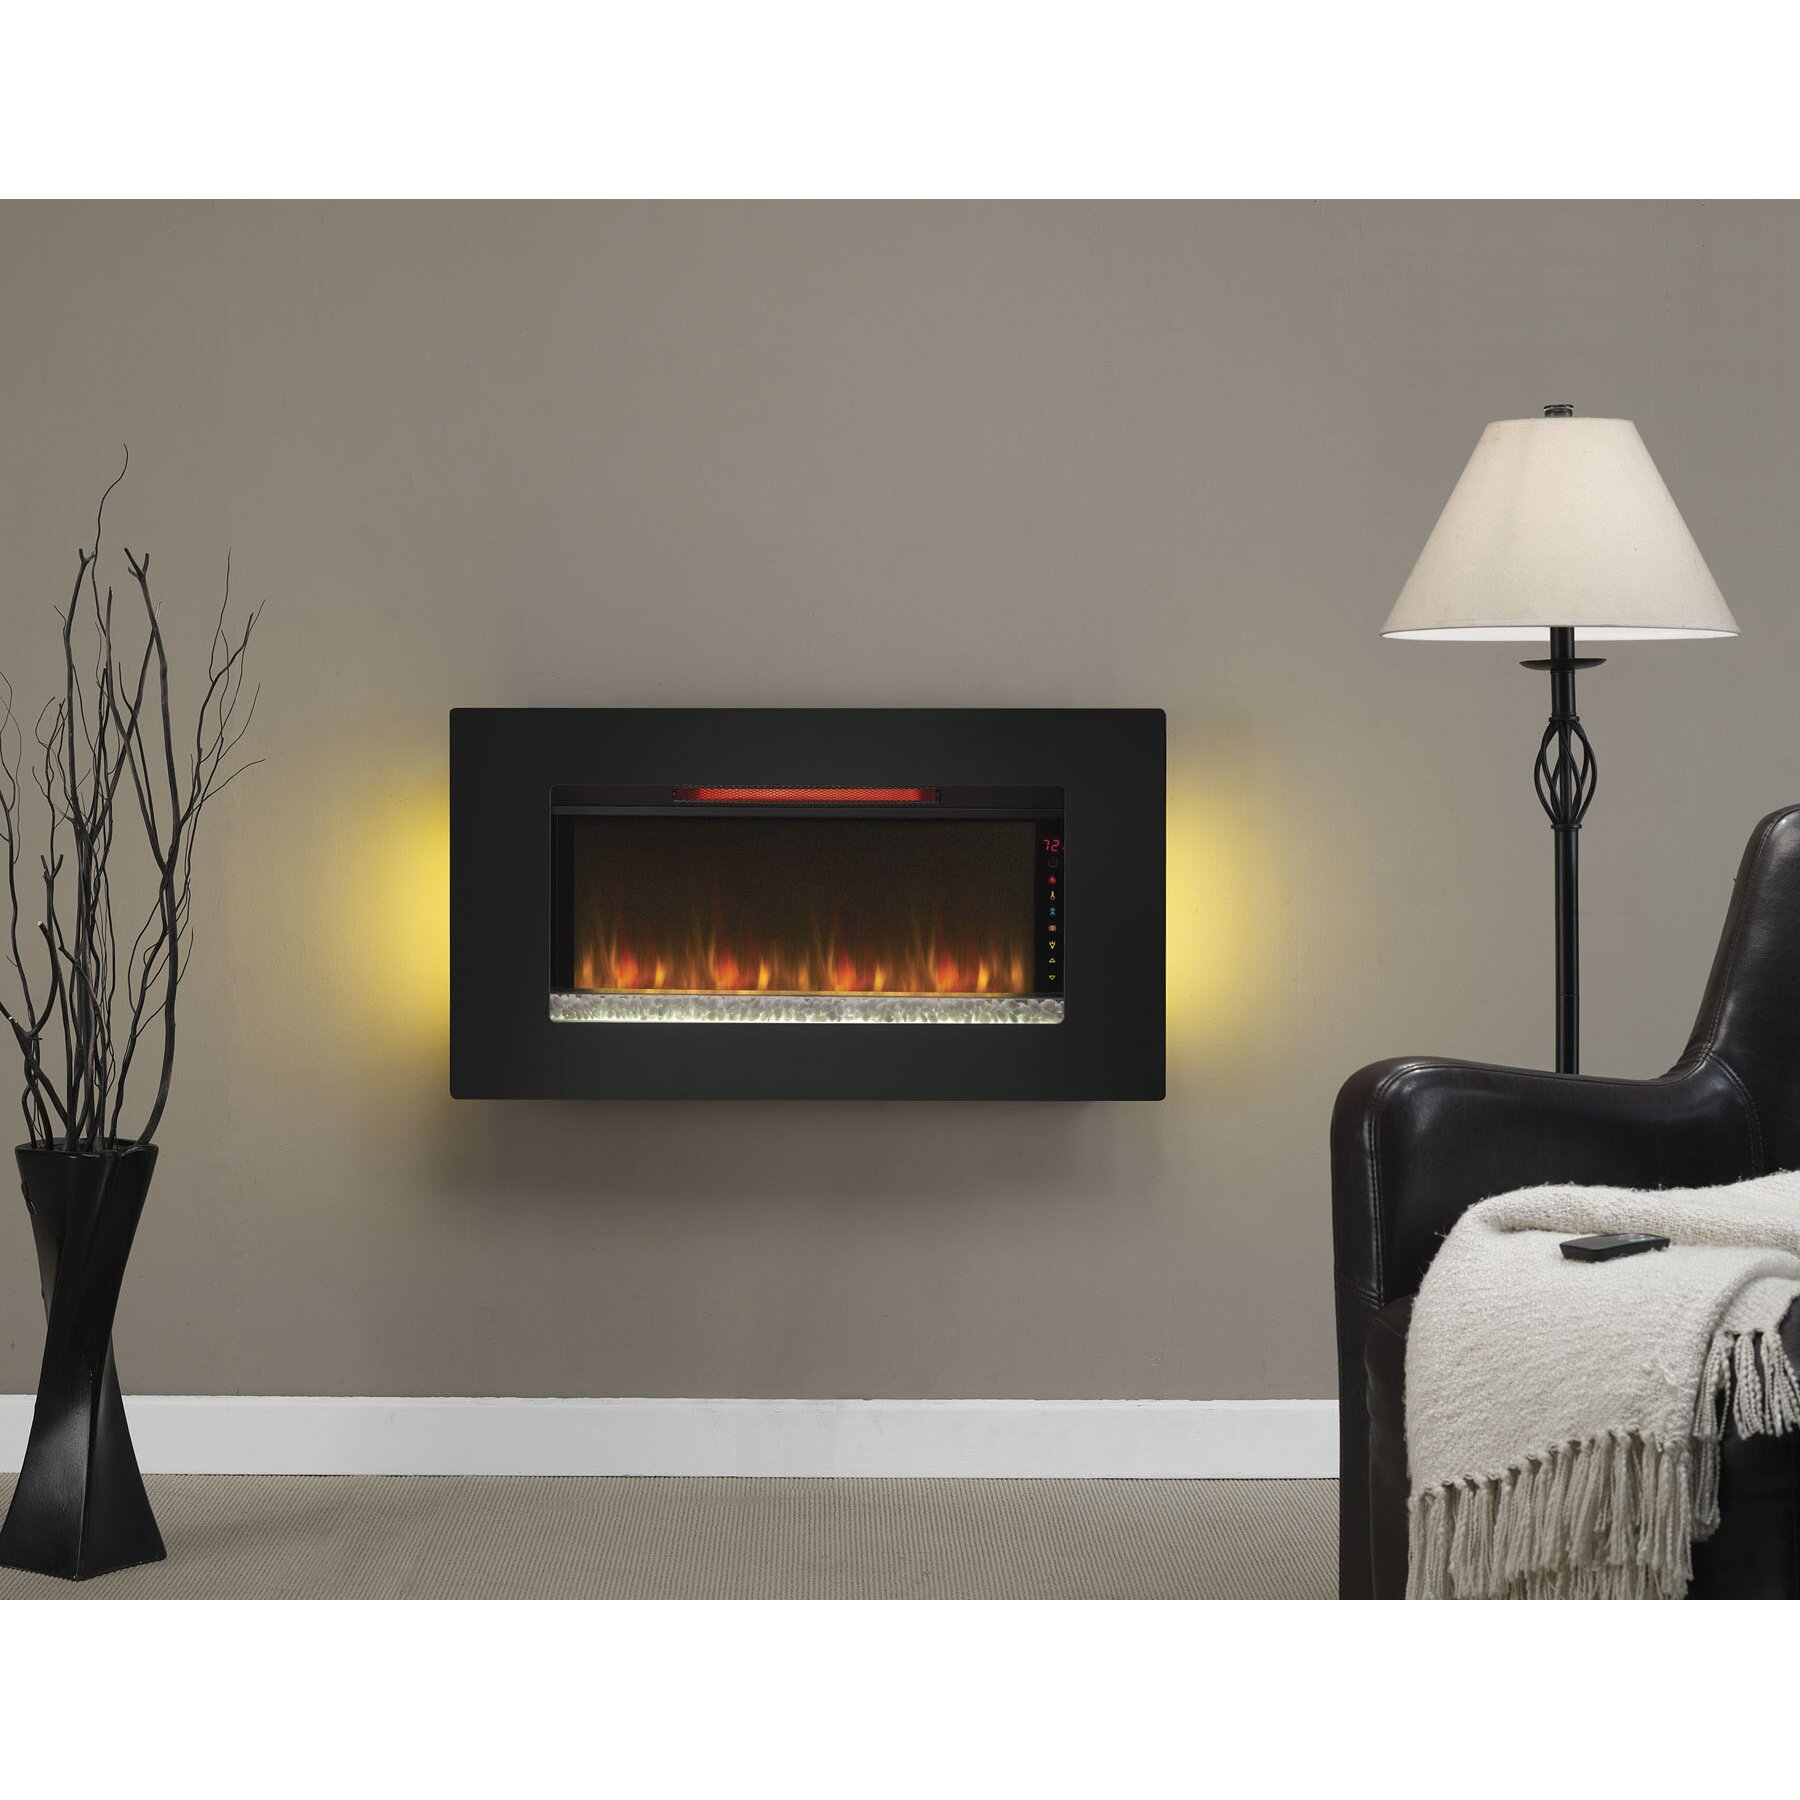 Blue Flame Gas Fireplace Fireplaces Blue Flame In Gas Fireplace ...